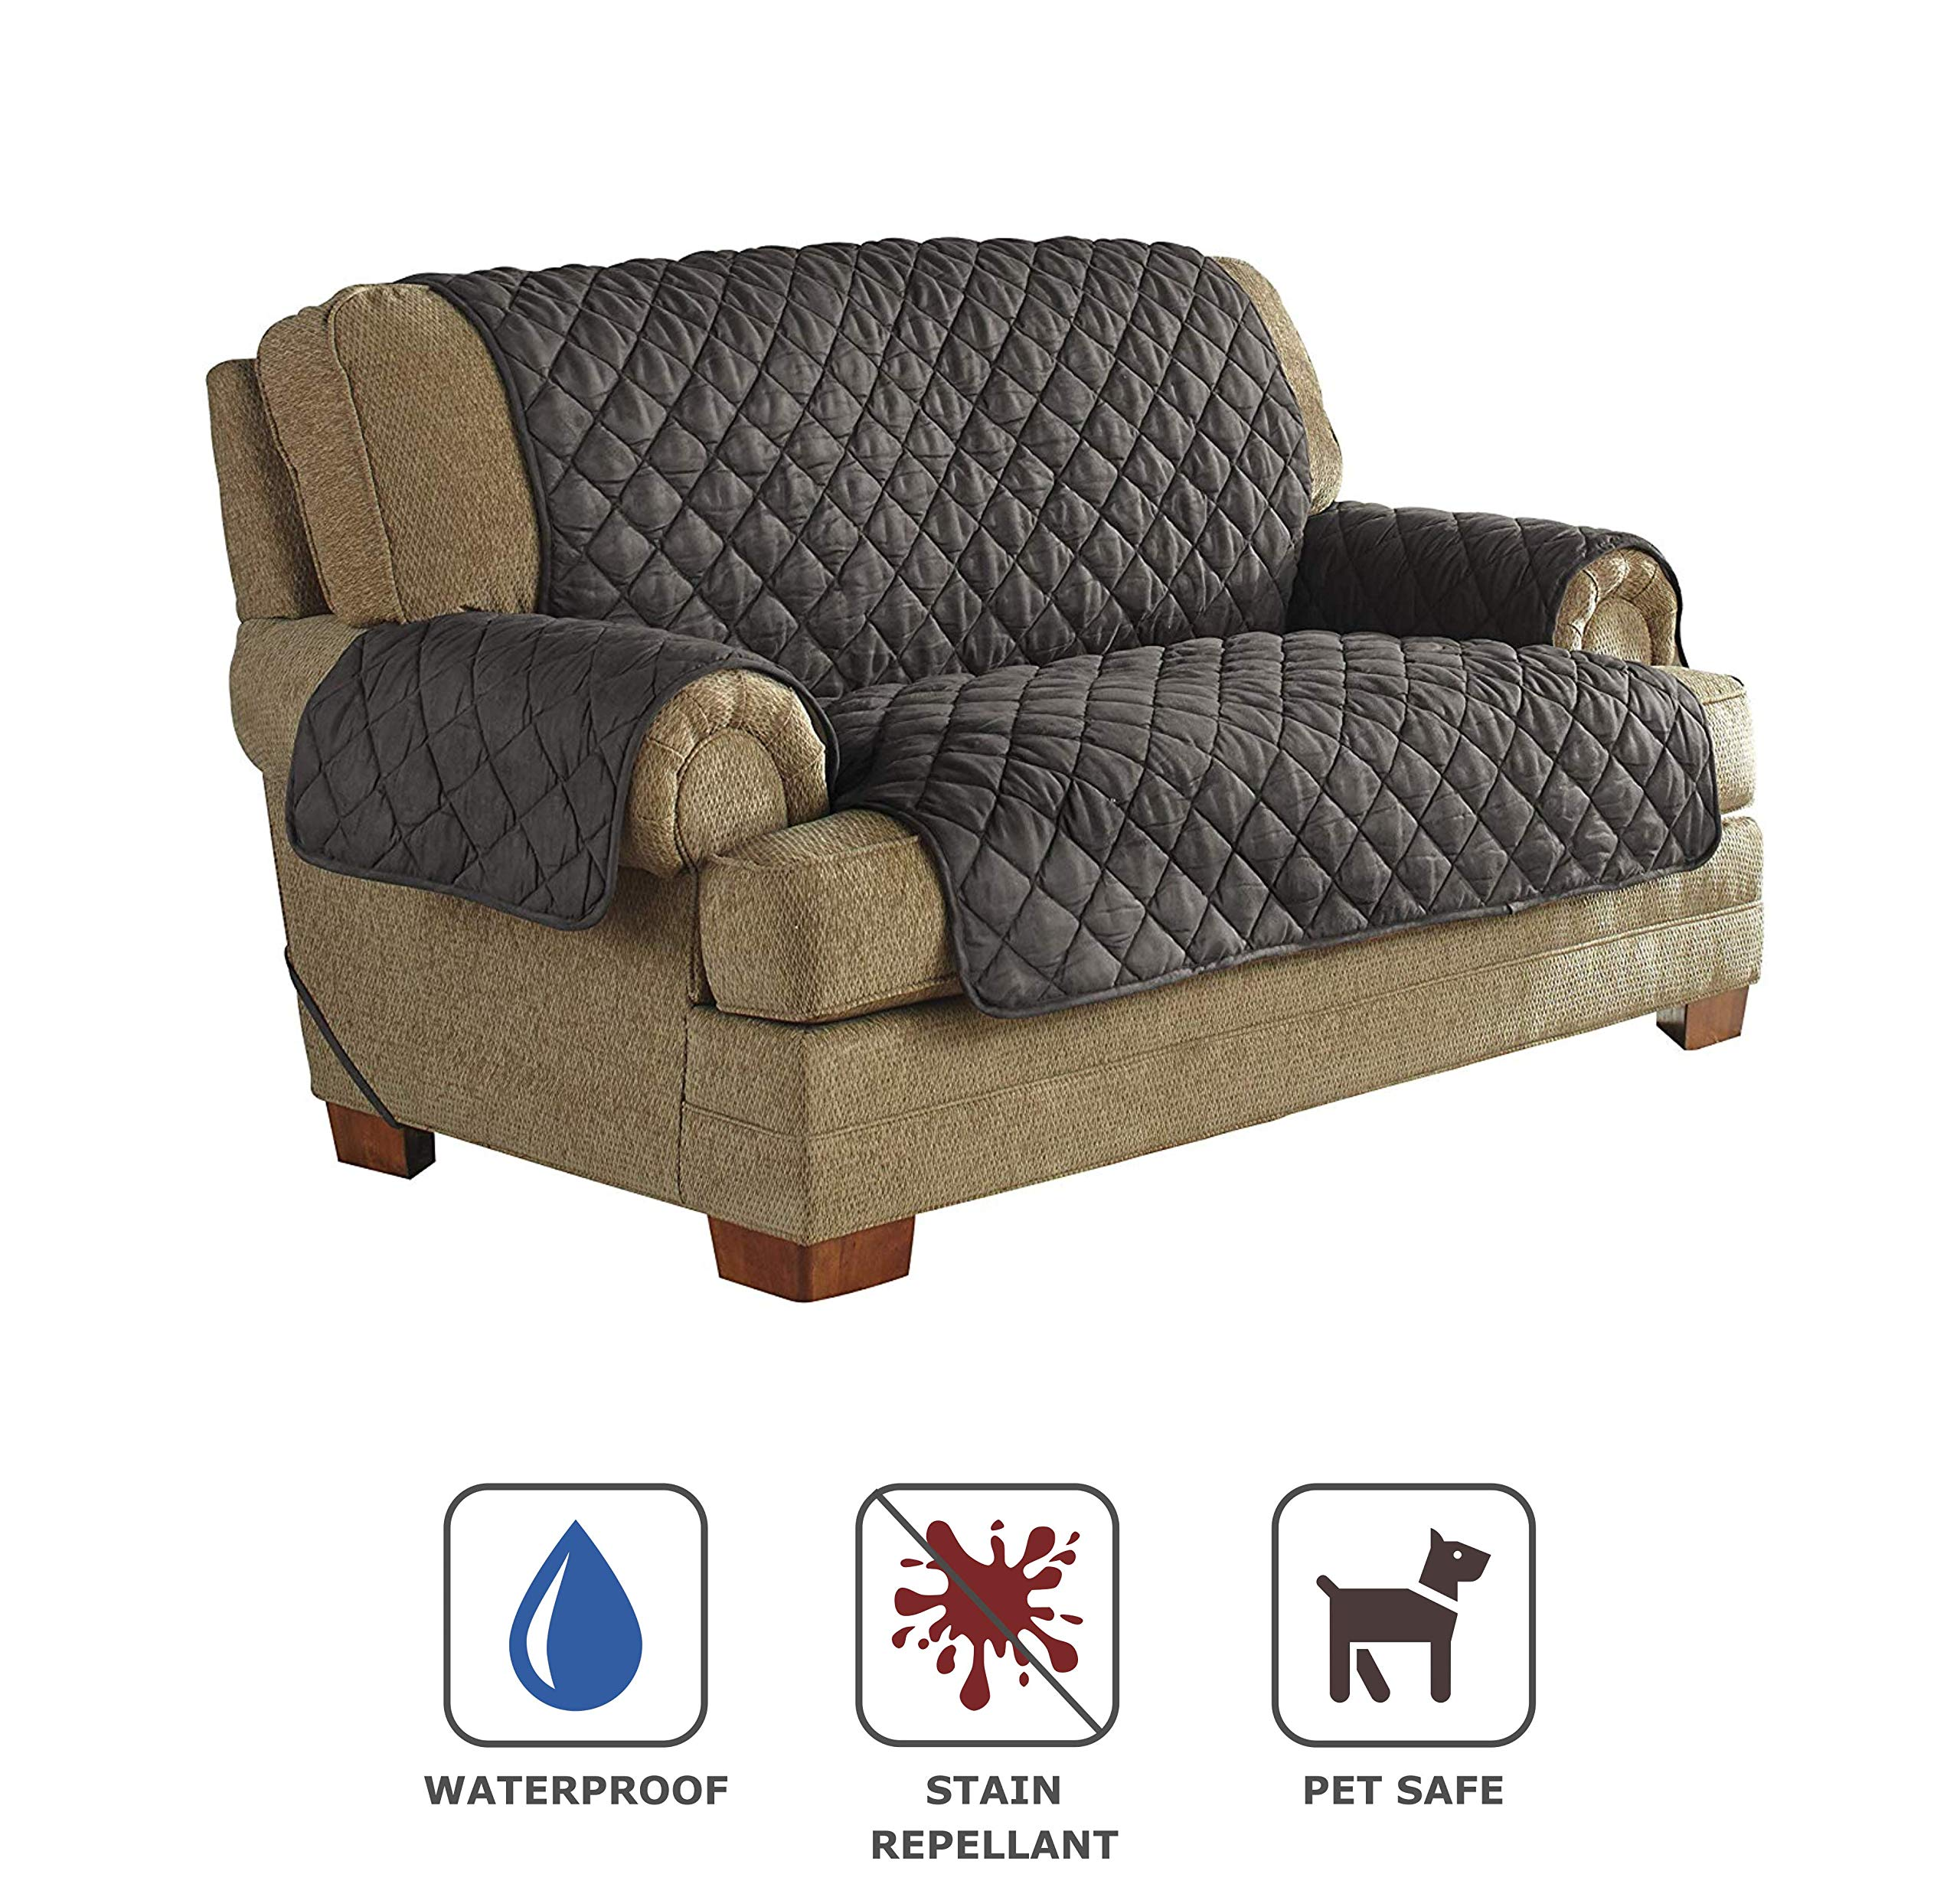 Serta | Quilted Ultra Suede Waterproof Furniture Protector, Pet Safe & Stain Resistant (Loveseat, Graphite) by Perfect Fit